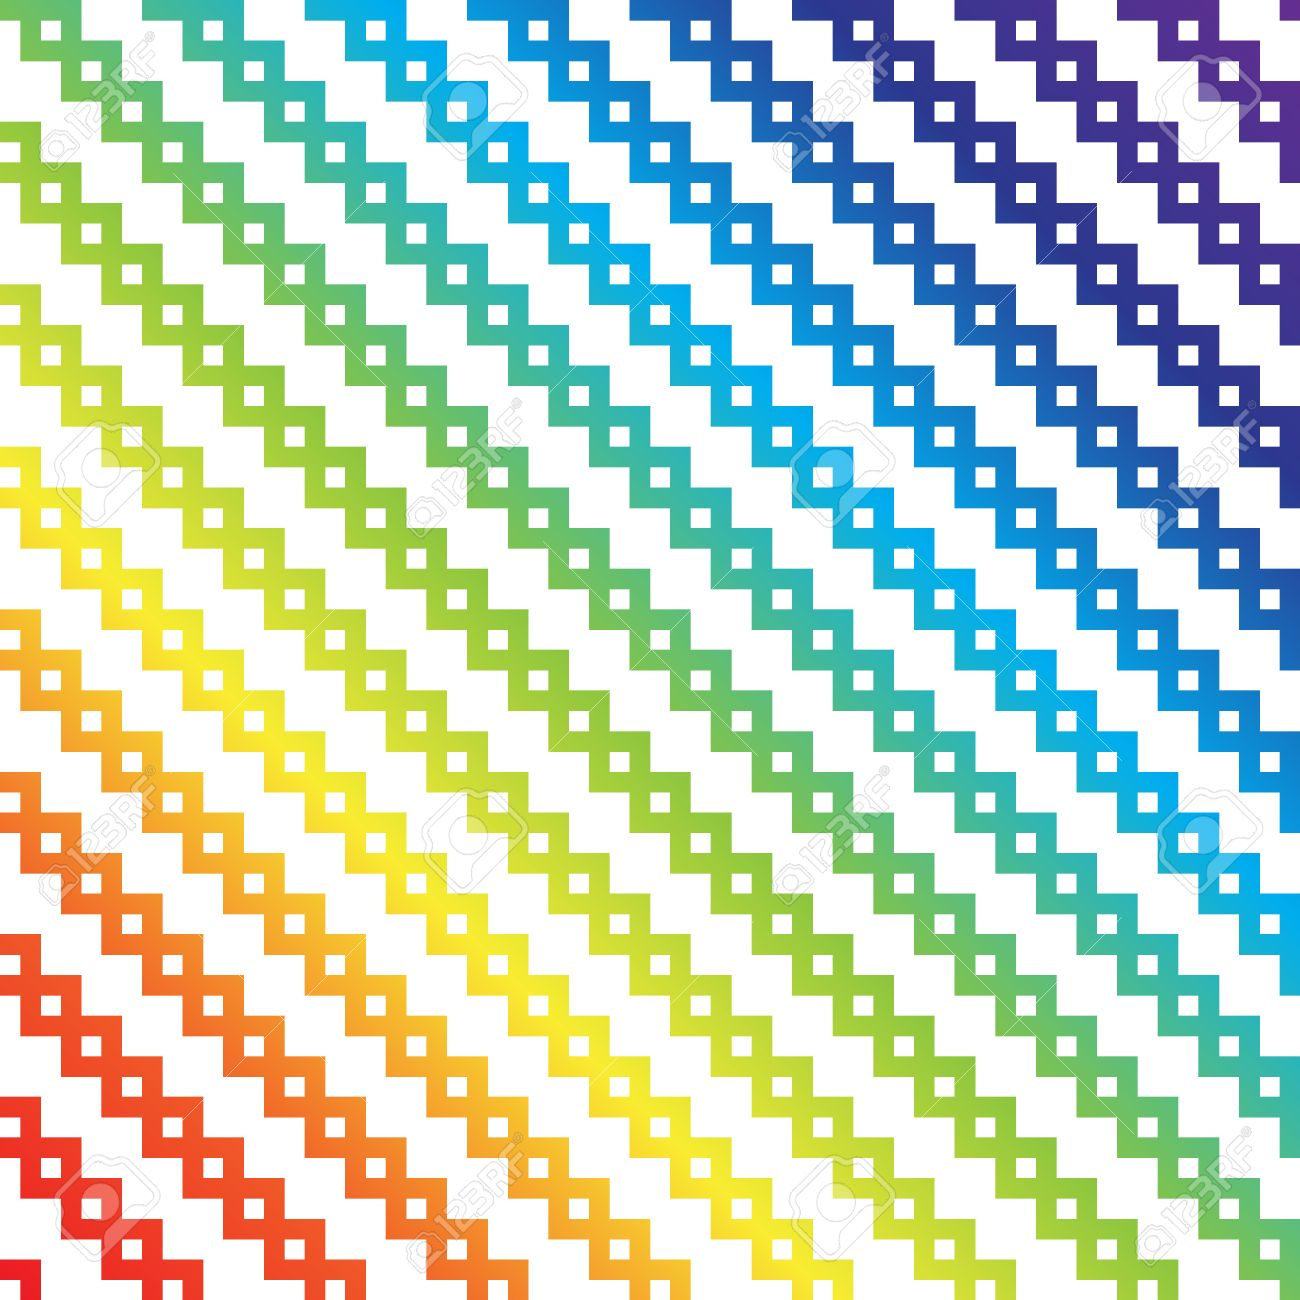 Rainbow Pixel Art Vector Abstract Background Pattern Royalty Free Cliparts Vectors And Stock Illustration Image 39341446